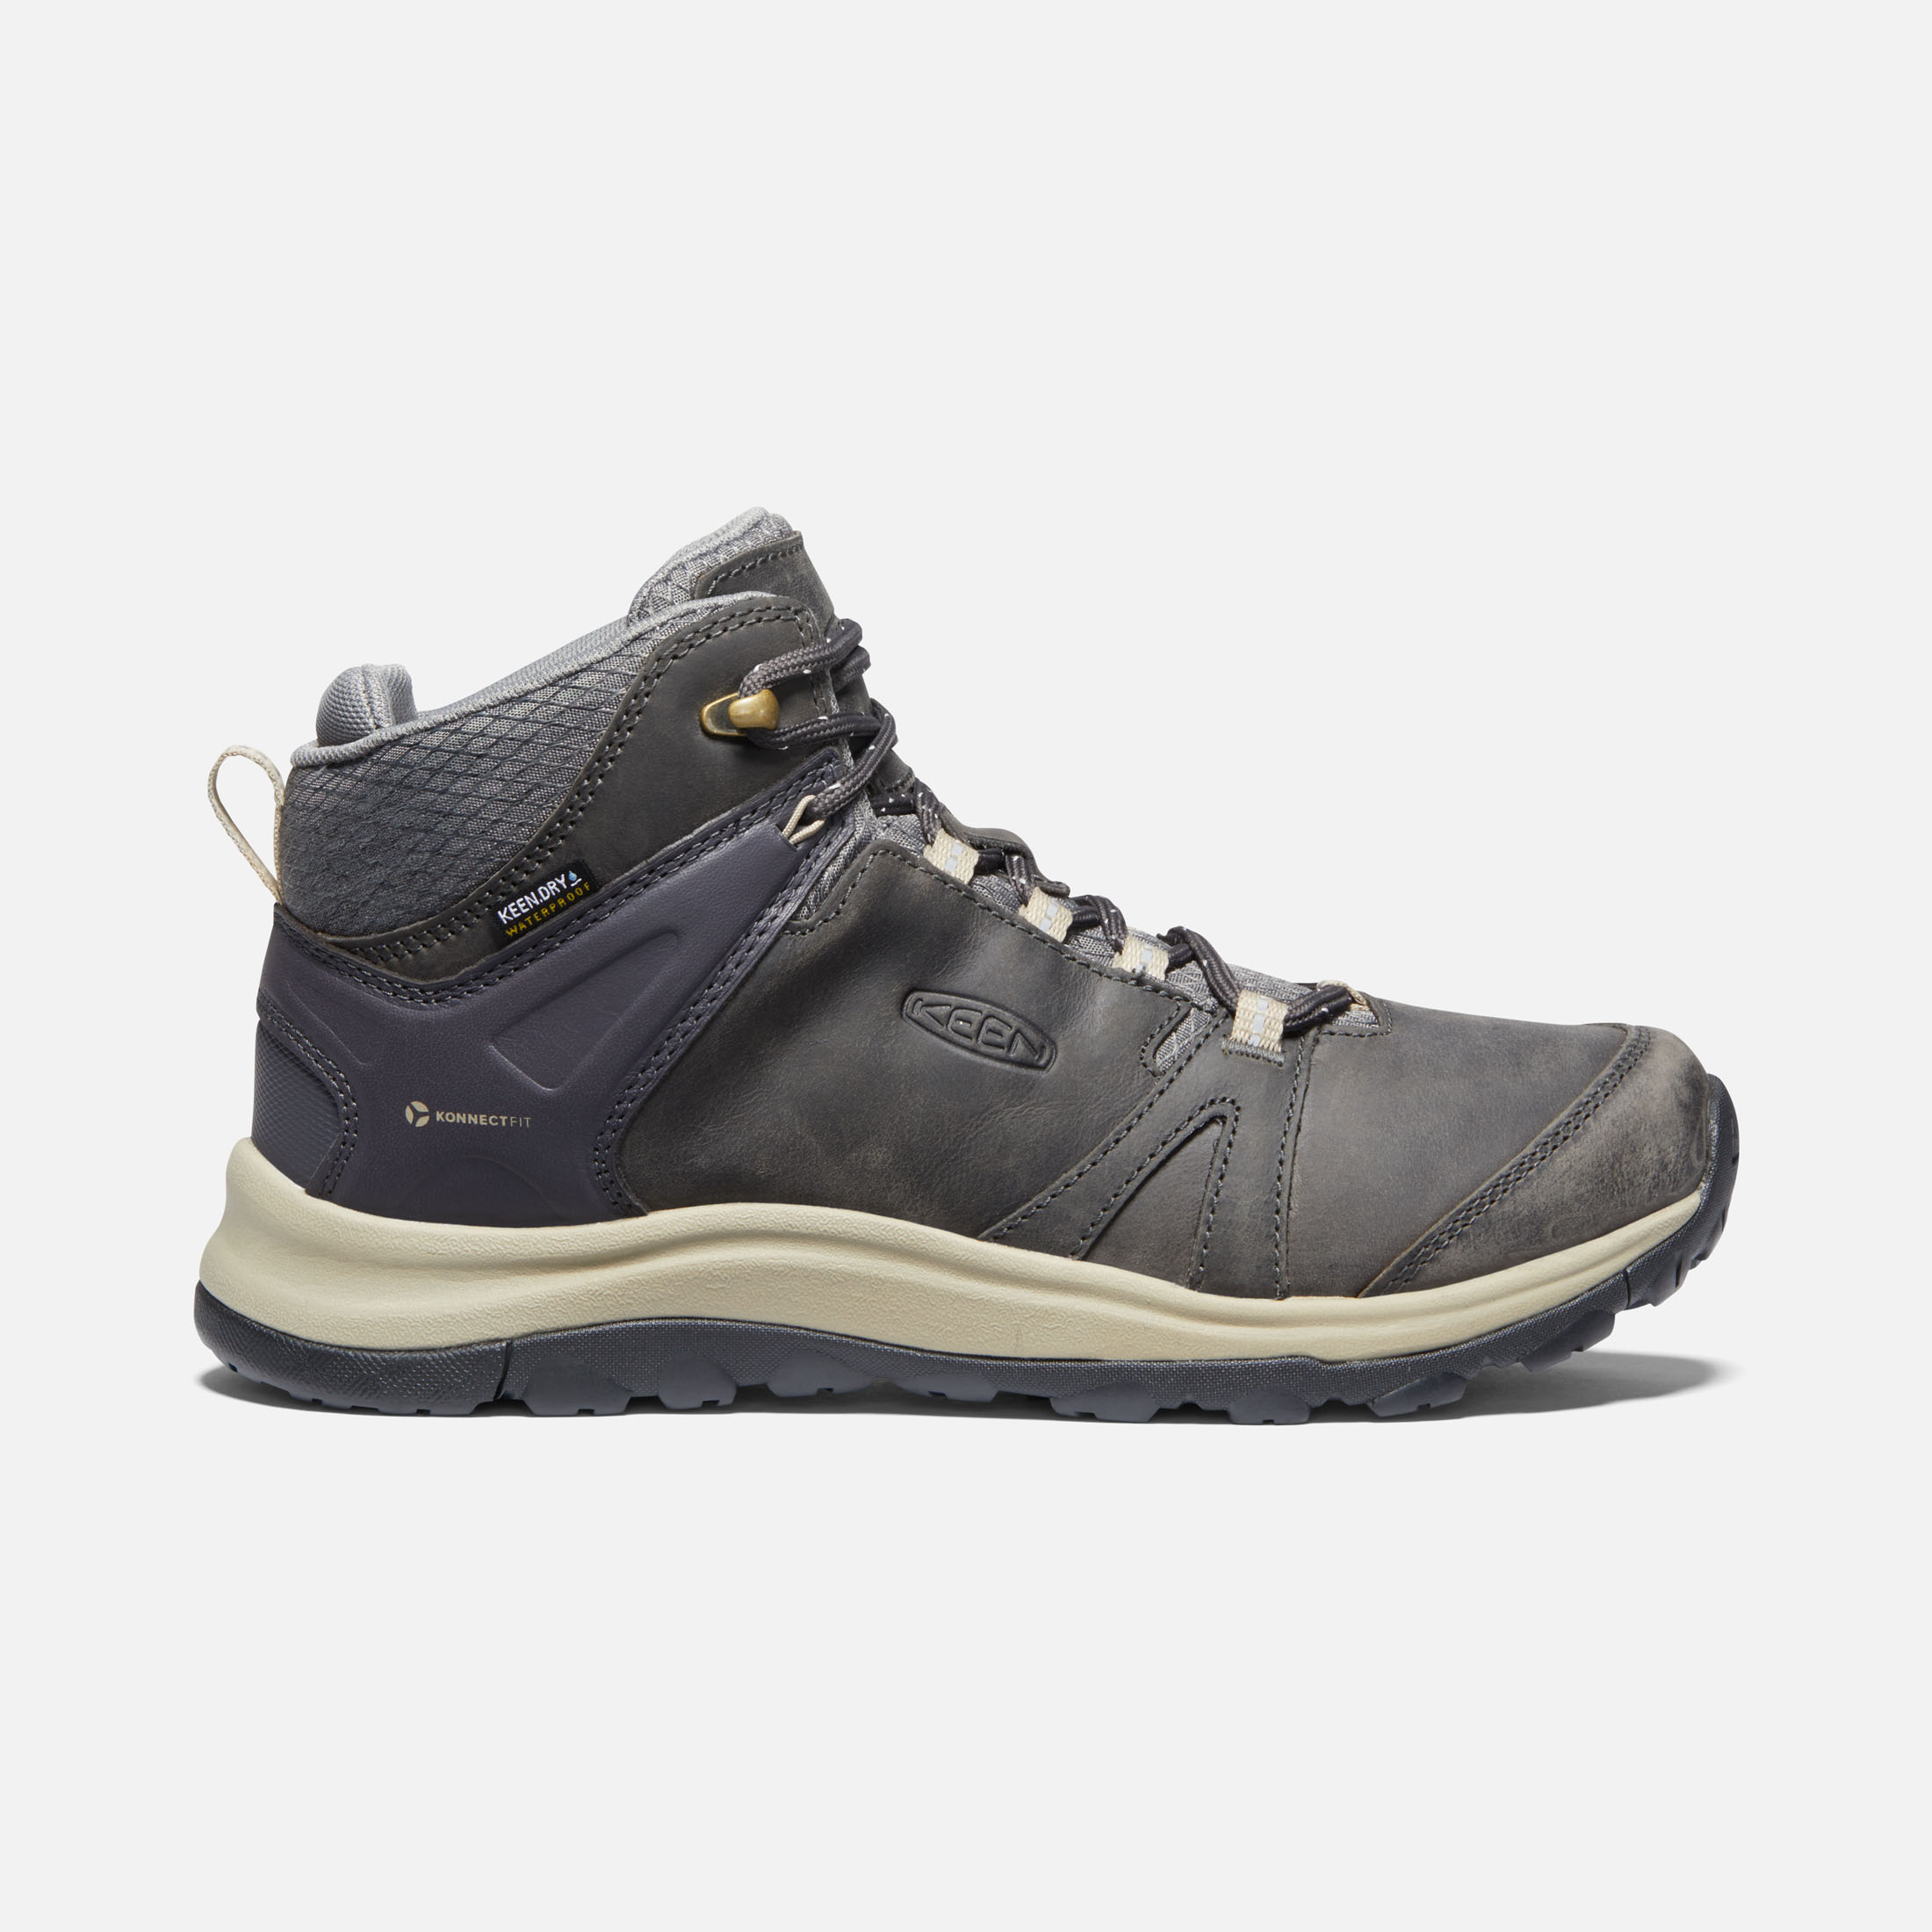 Women's Leather Hiking Boots